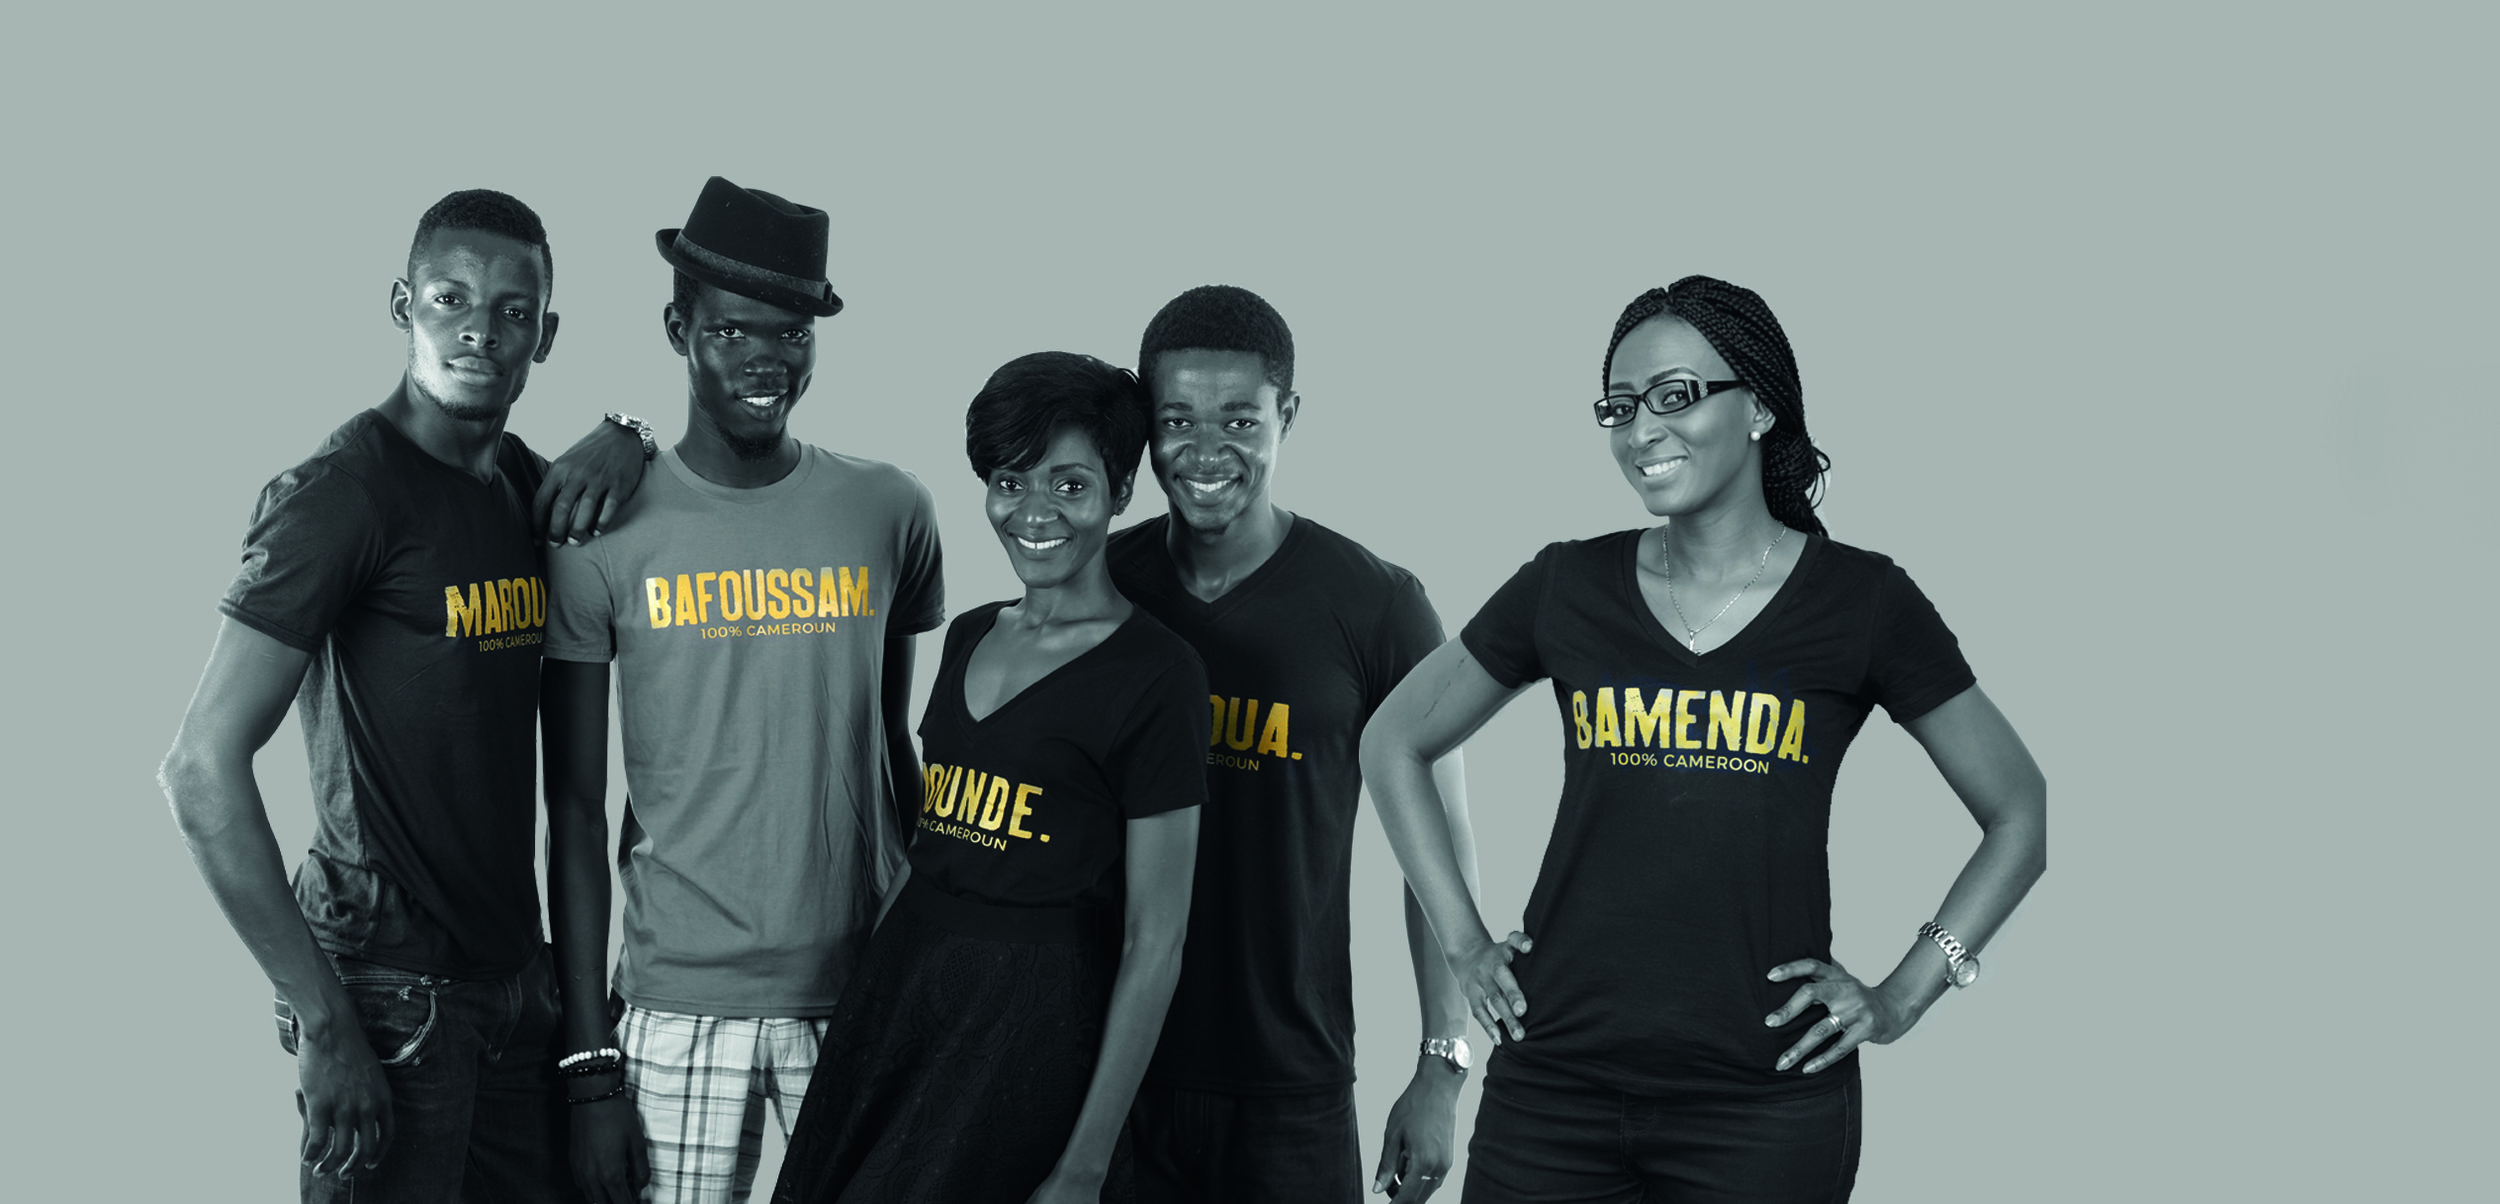 100%CAMEROON  collection: pick a city, support a school! Available in Yaounde @CCMC behind the Chinese embassy.